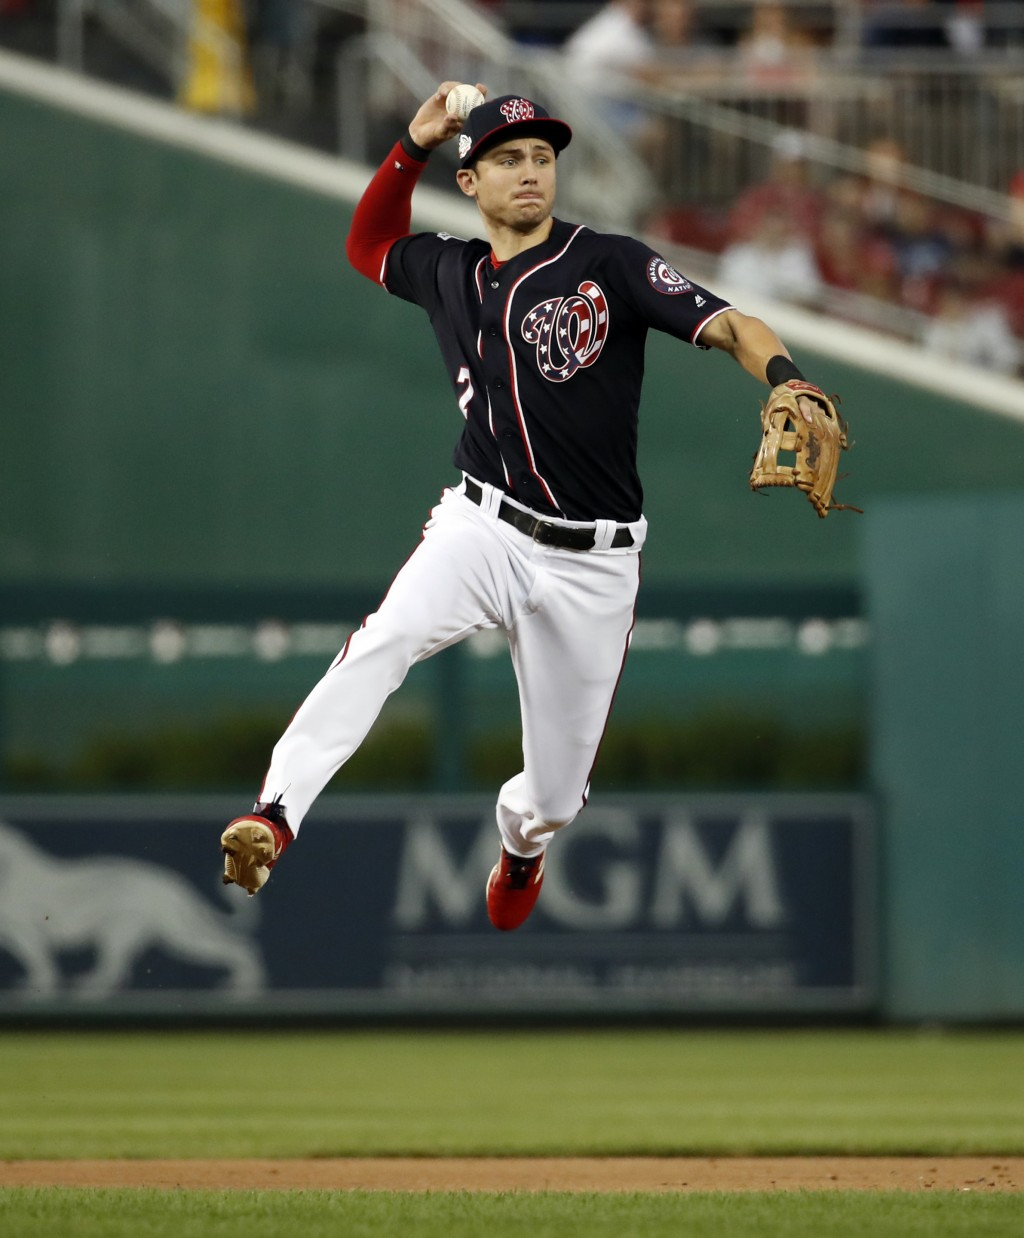 Washington Nationals shortstop Trea Turner jumps to throw out Miami Marlins' J.T. Realmuto during the first inning of a baseball game at Nationals Par...